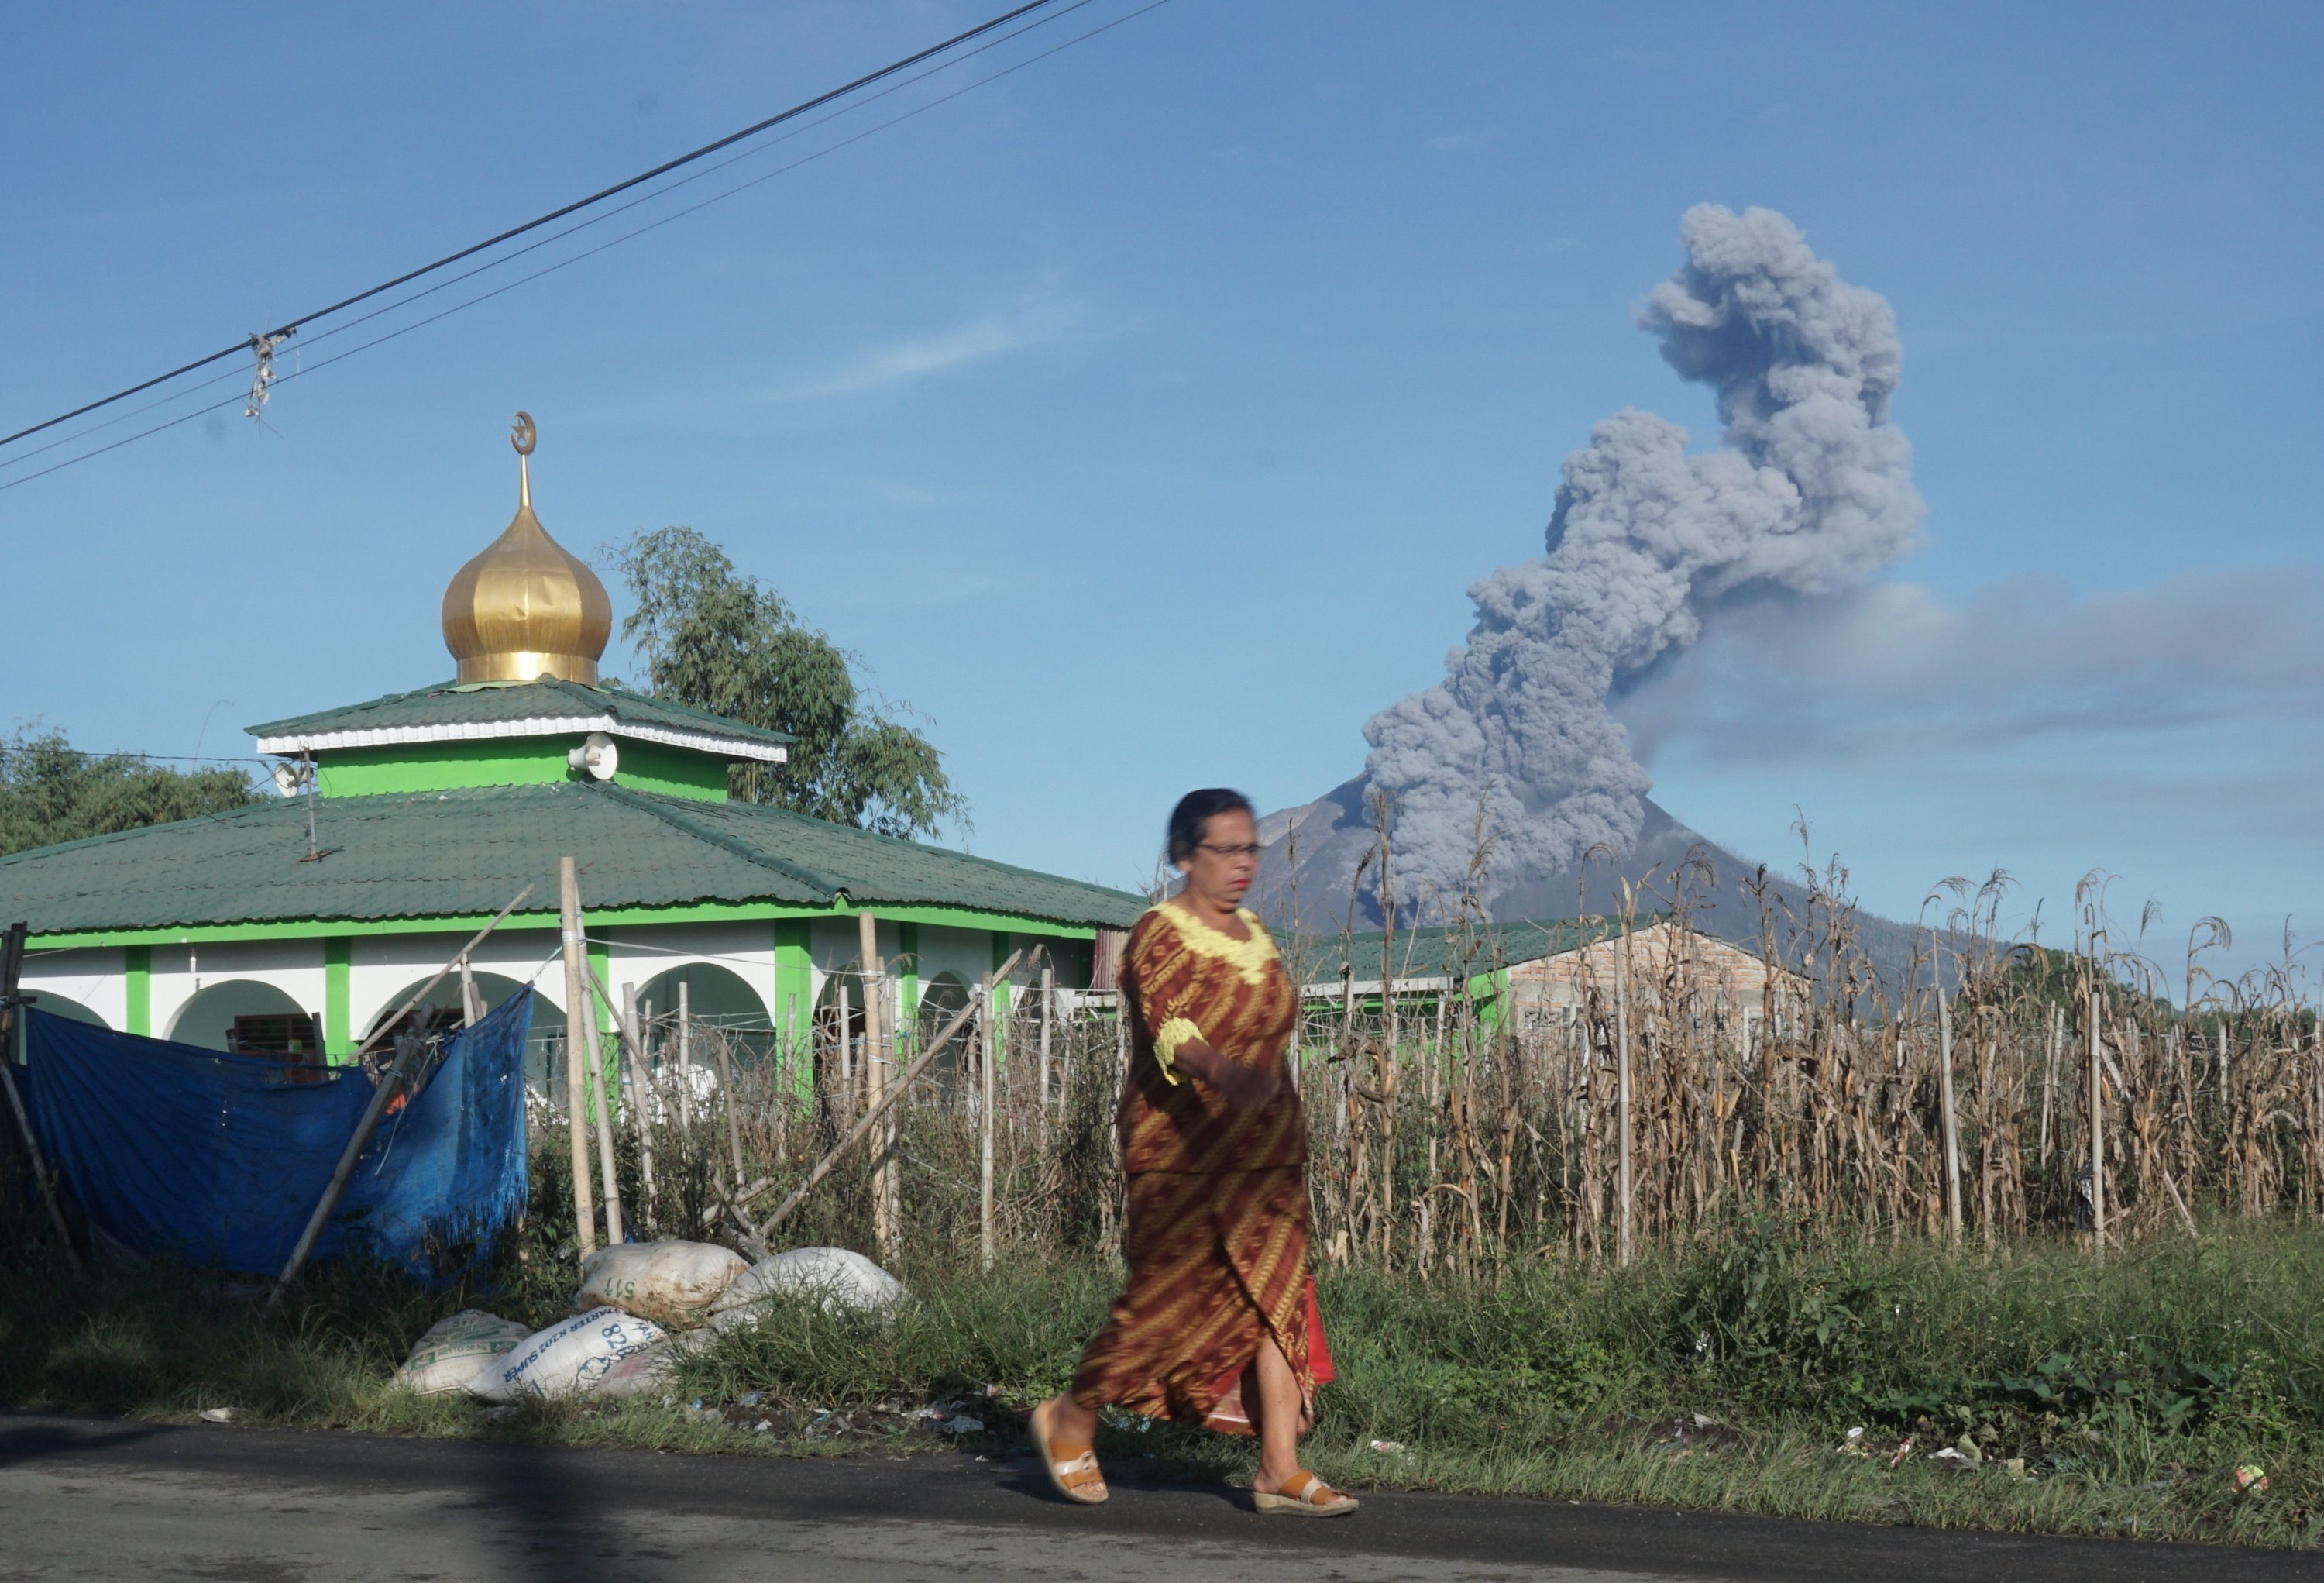 A woman walks as Mount Sinabung spews thick smoke into the air in Karo, North Sumatra, Indonesia, Aug. 23, 2020. (AFP Photo)